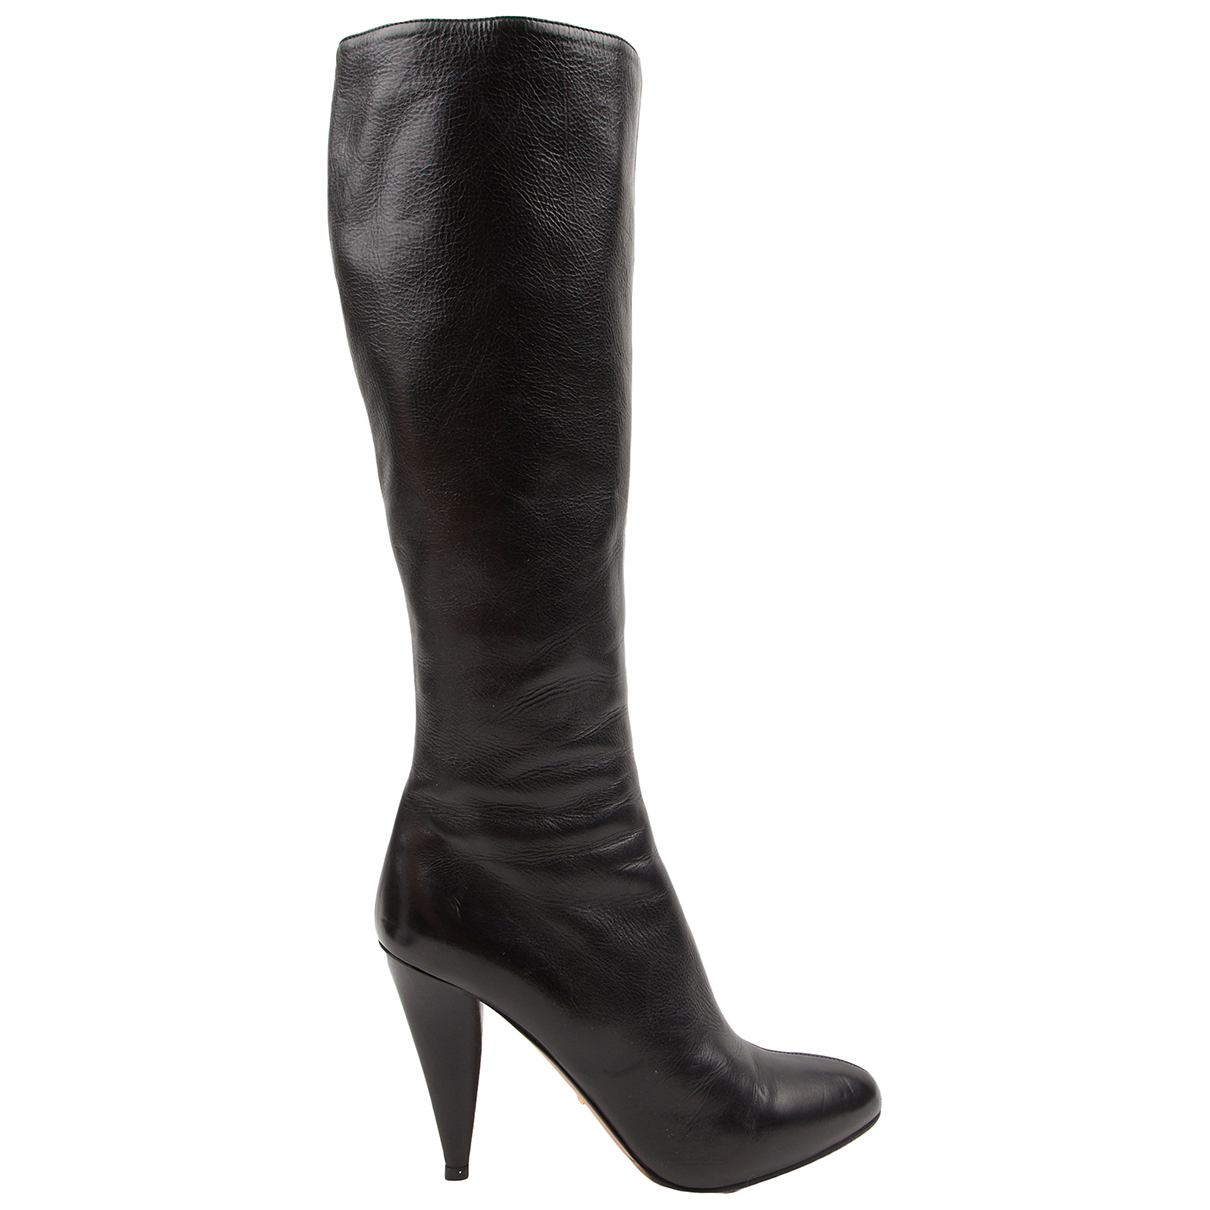 Prada \N Black Leather Boots for Women 38.5 IT